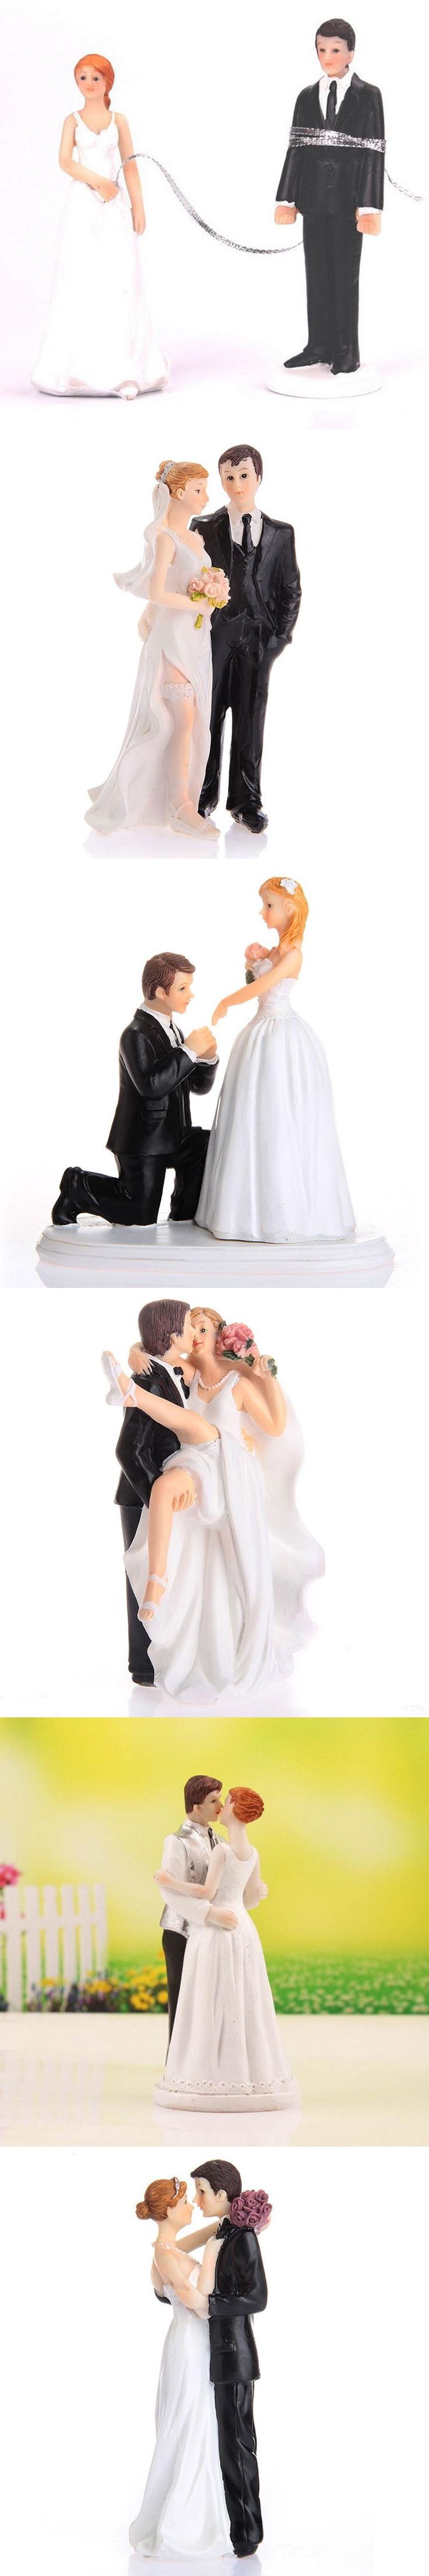 High Quality Synthetic Resin Wedding Couple Bride and Groom Wedding Cake Topper/Decoration Ornament Adorable Figurine Craft Gift